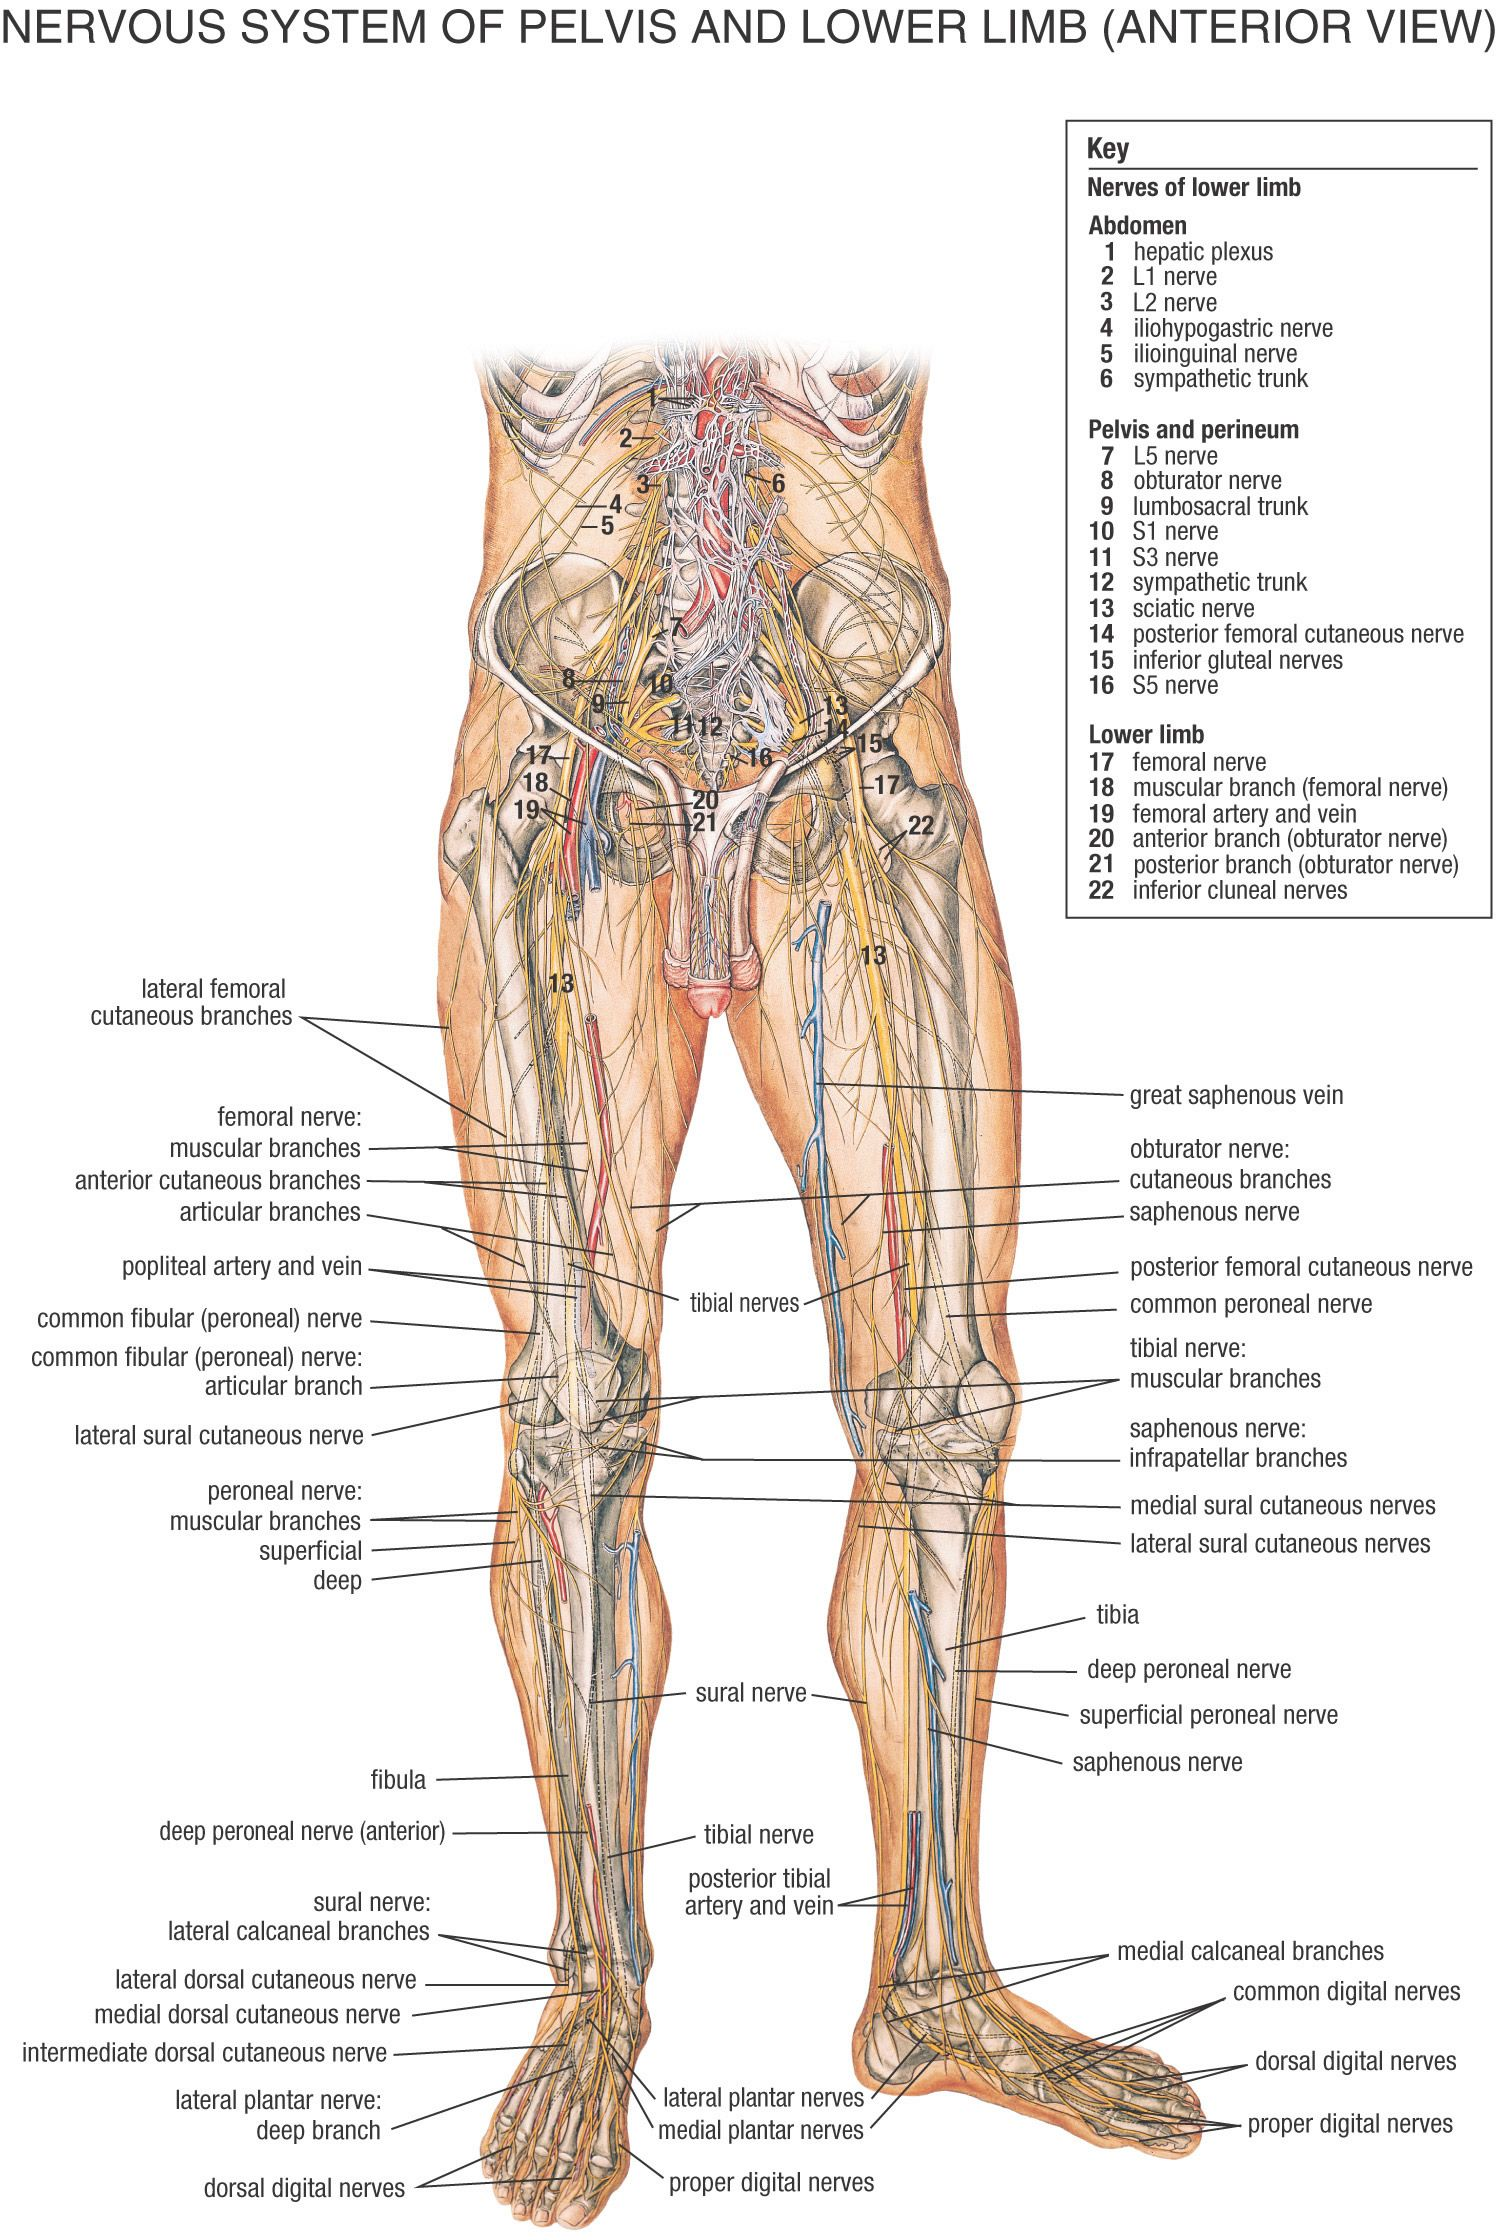 Fysiurgisk massr tag hnd om din krop anatomy pinterest nervous system of pelvis and lower limb anterior view anatomy ccuart Choice Image